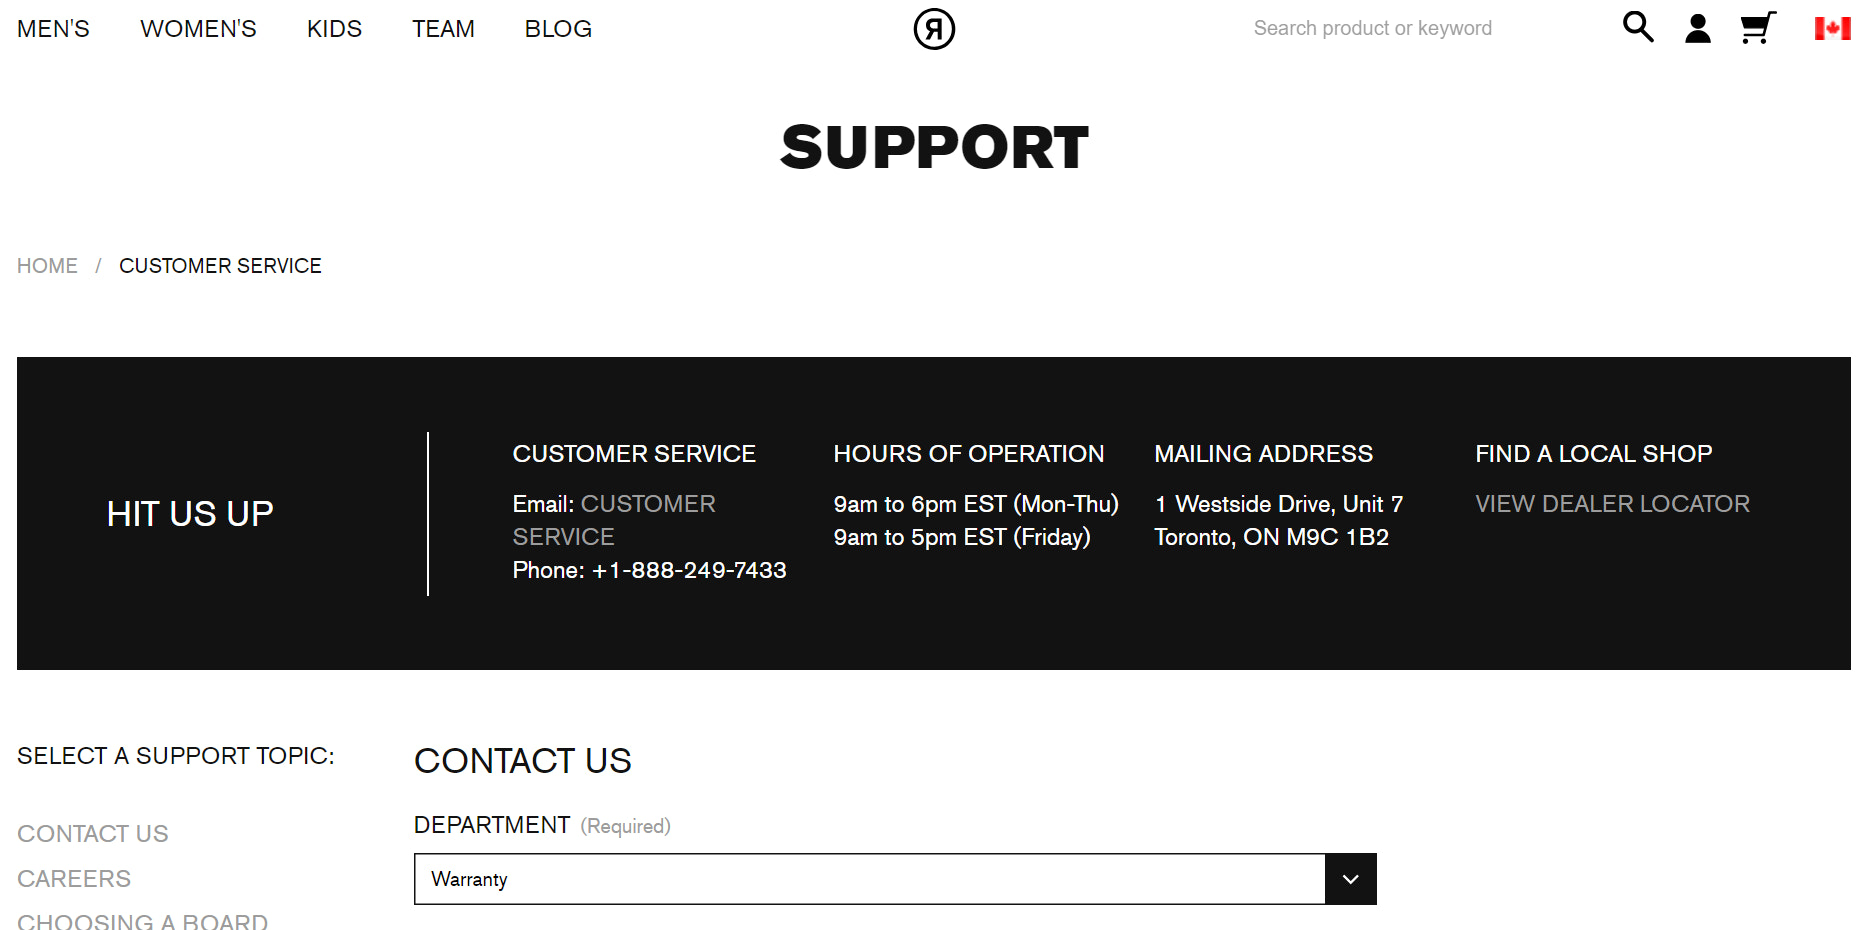 5 Steps To Building The Perfect Contact Us Page